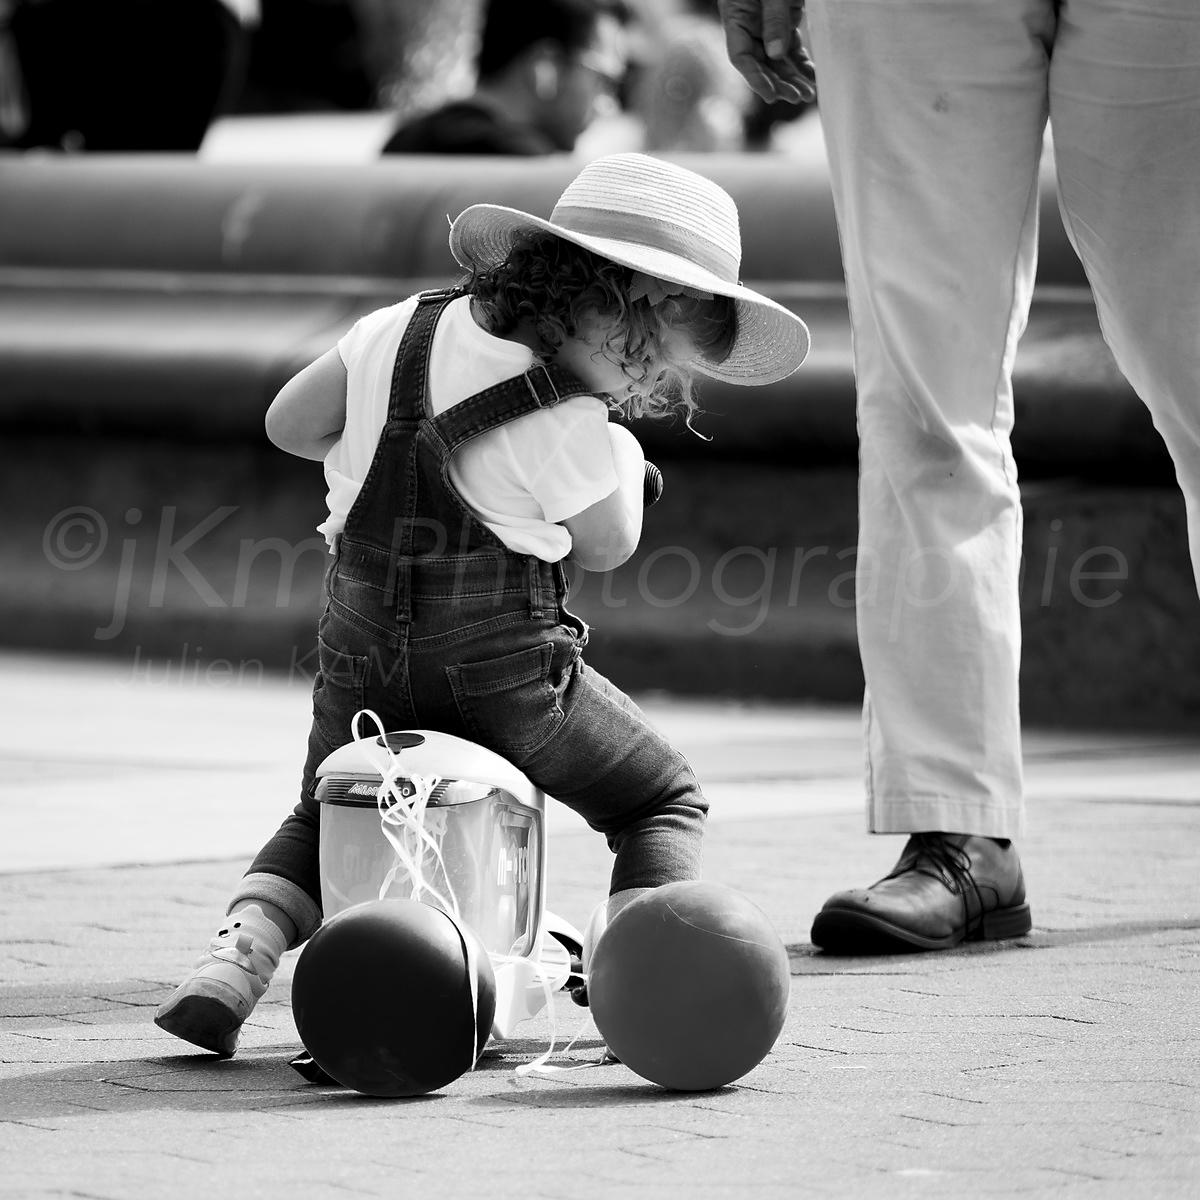 Street Photo - The little girl with a hat